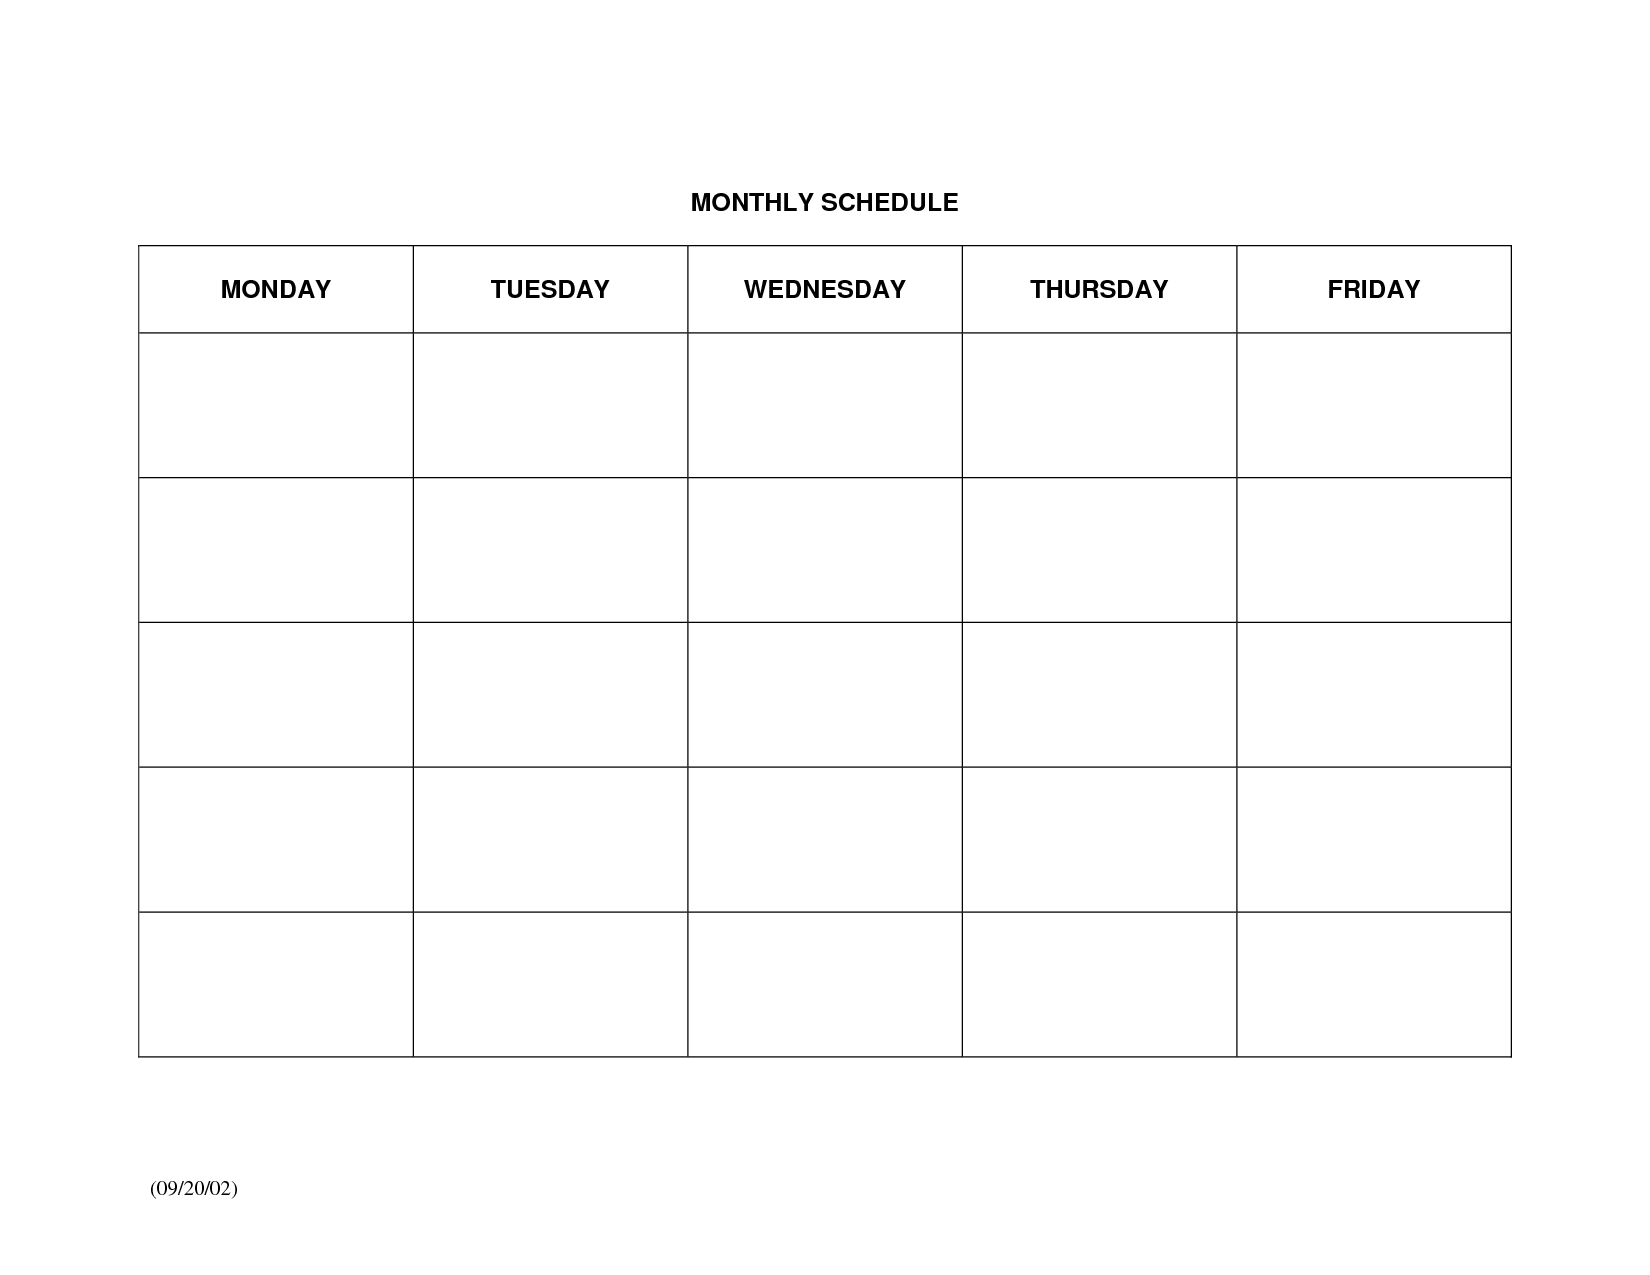 Schedule Template Monthly Calendar Printable Large Blank Weekly Free intended for Large Blank Monthly Calendar Template